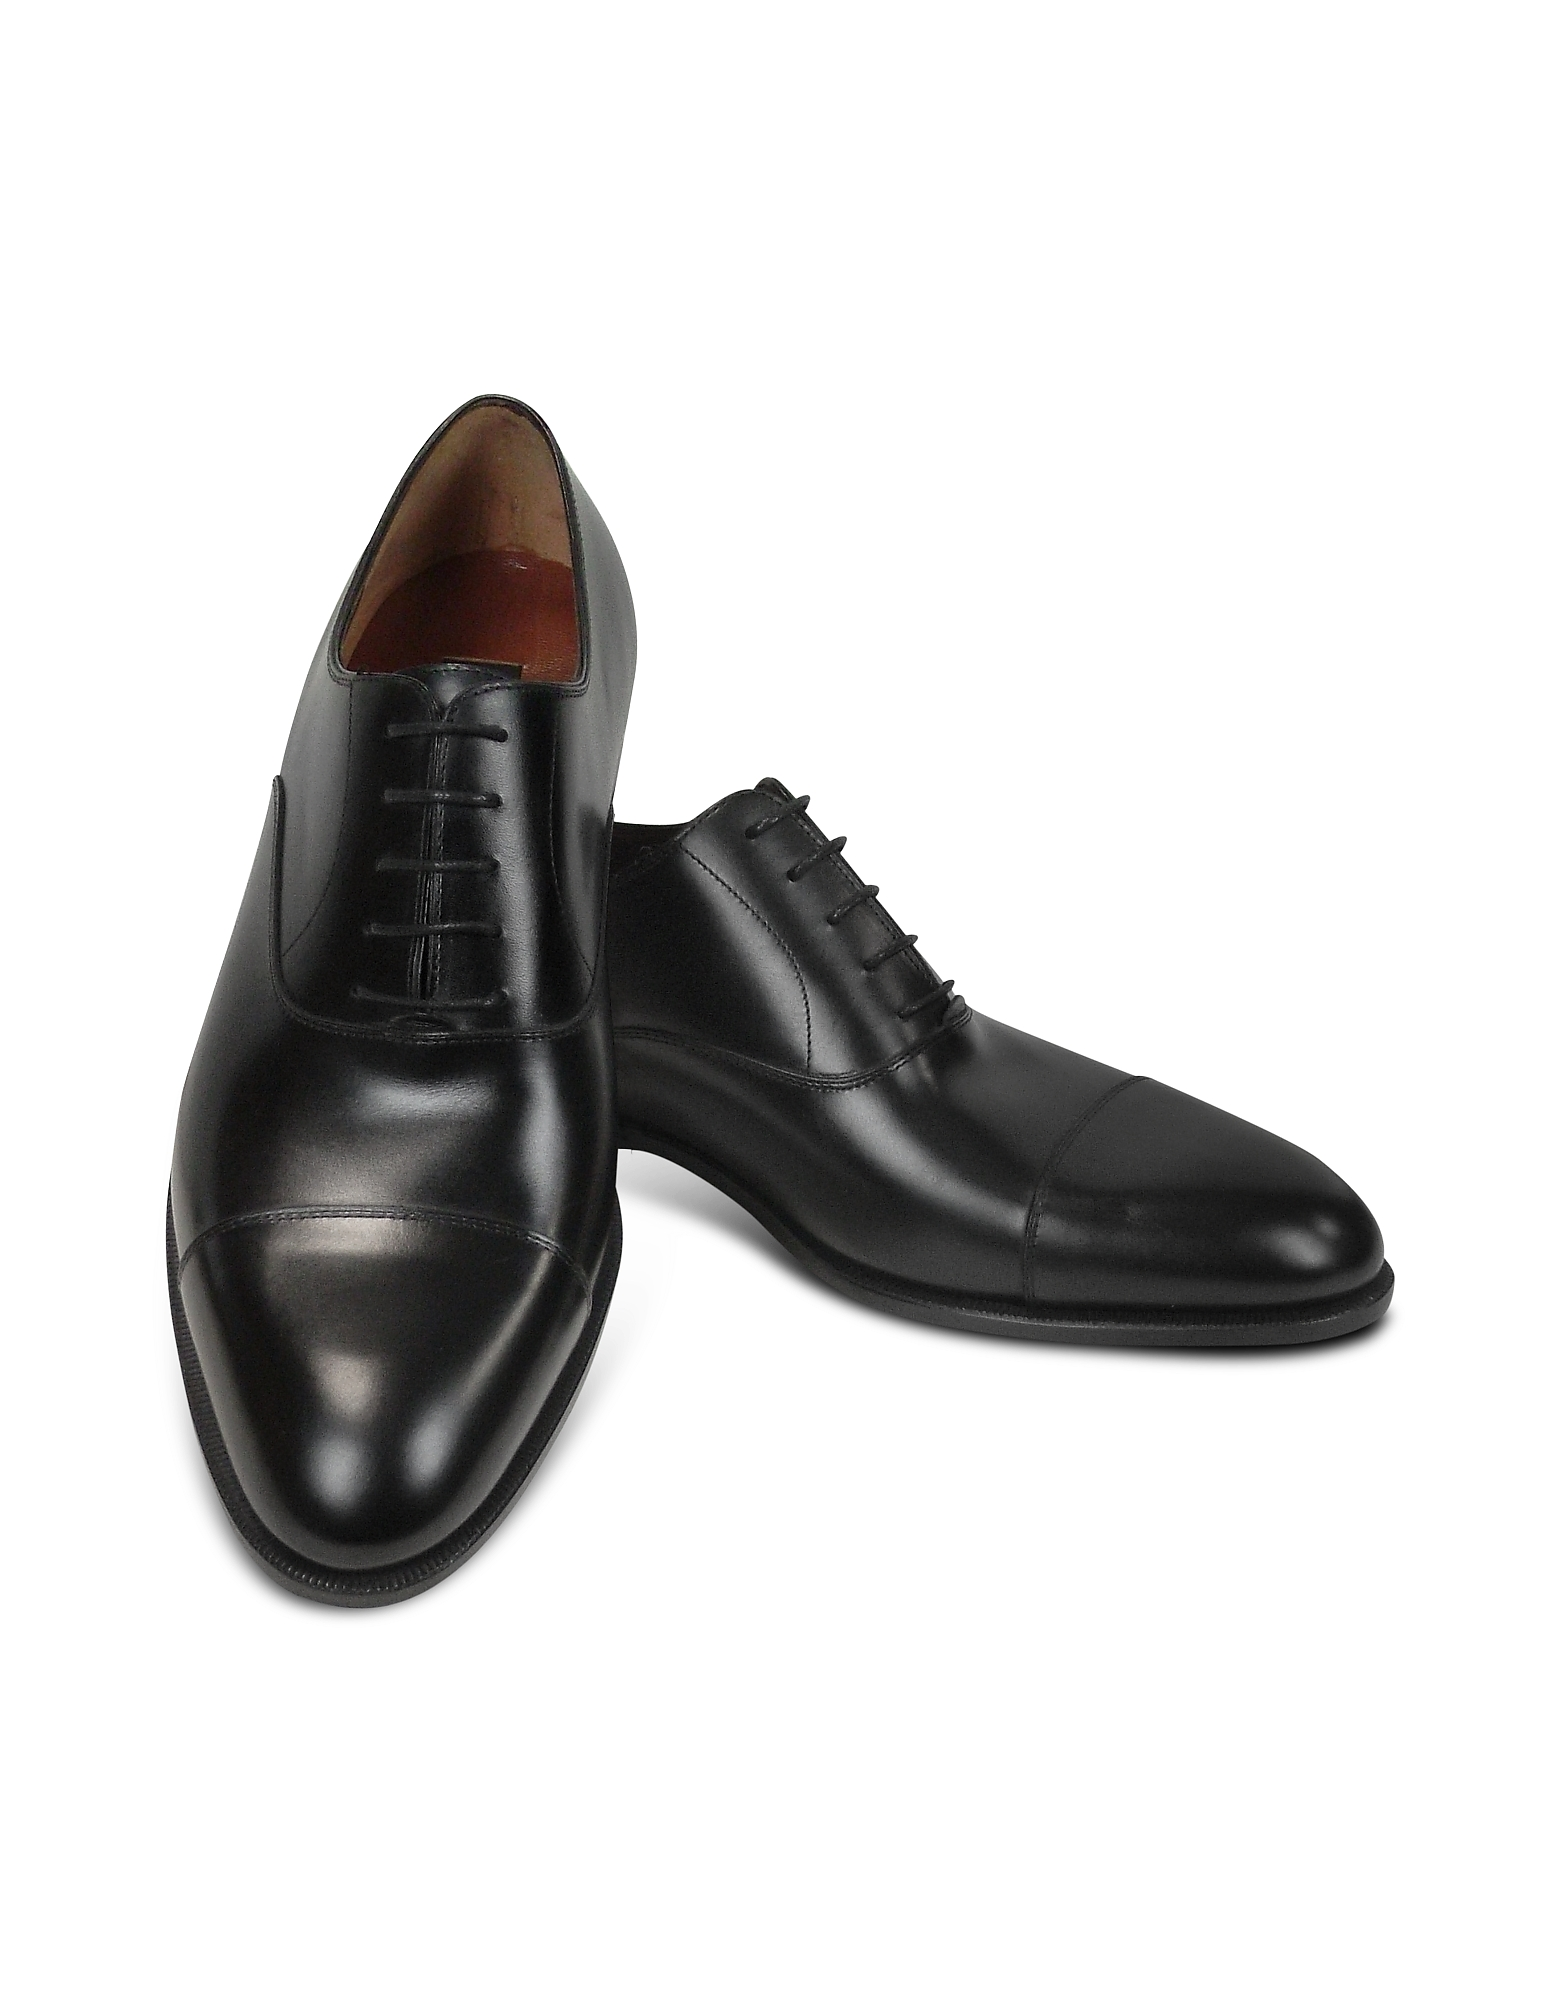 Fratelli Rossetti Shoes, Black Calf Leather Cap Toe Oxford Shoes